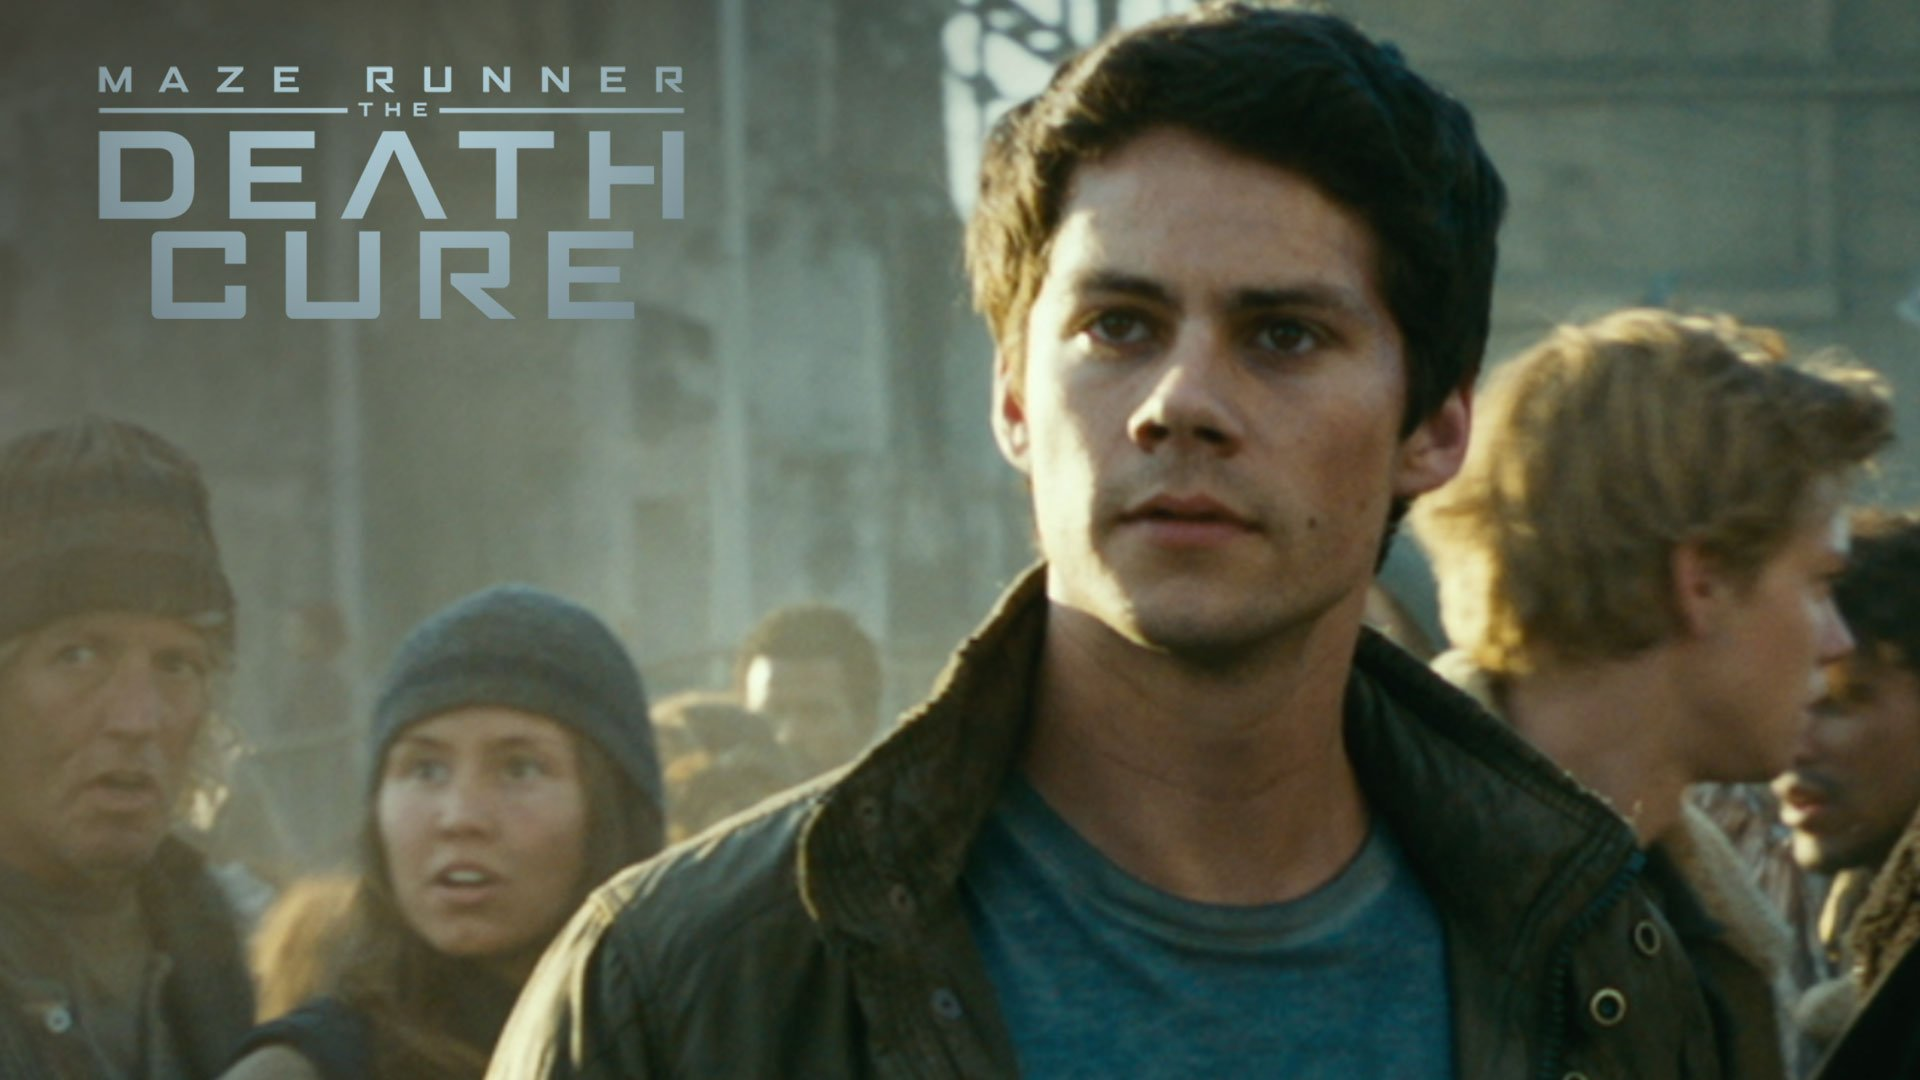 Every maze has an end. Watch the new #DeathCure Trailer now. In theaters January 26. https://t.co/GbMDjJ0xiW